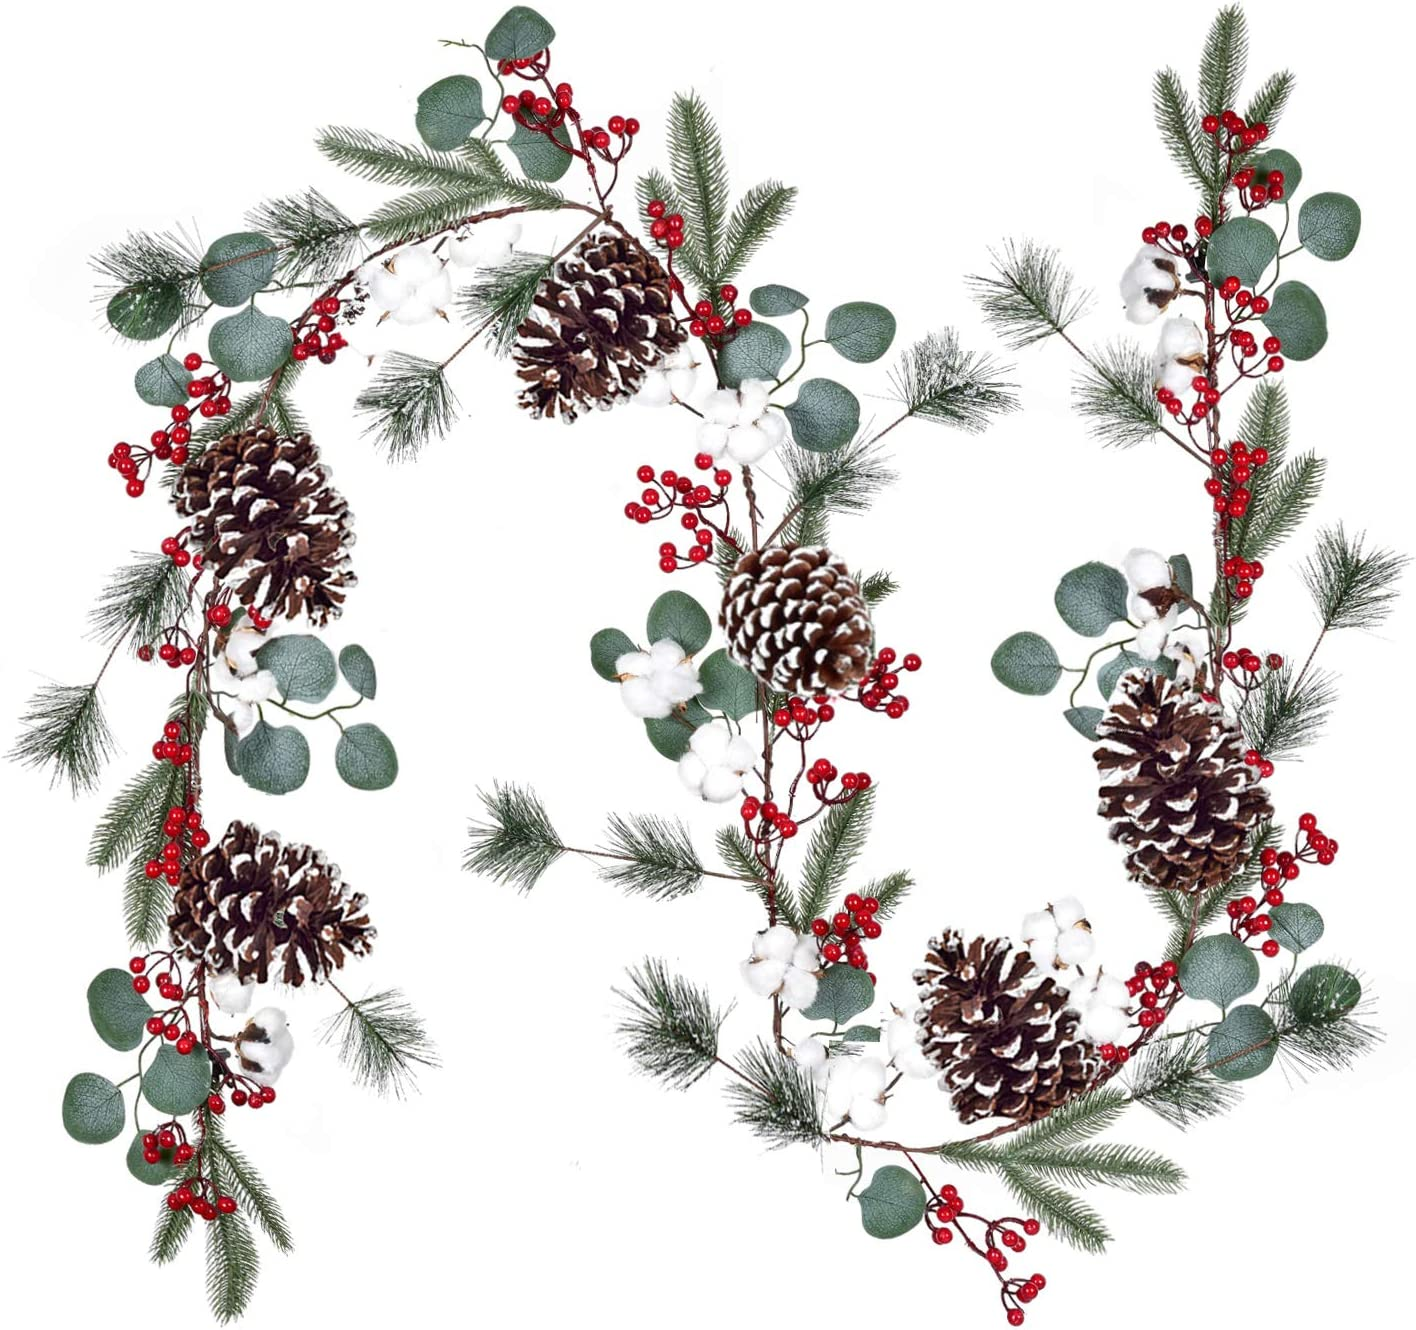 DearHouse 6Feet Berry Christmas Garland with Berries Pinecones Spruce Eucalyptus Leaves Cotton Balls Winter Artificial Greenery Garland for Holiday Season Mantel Fireplace Table Runner New Year Decor